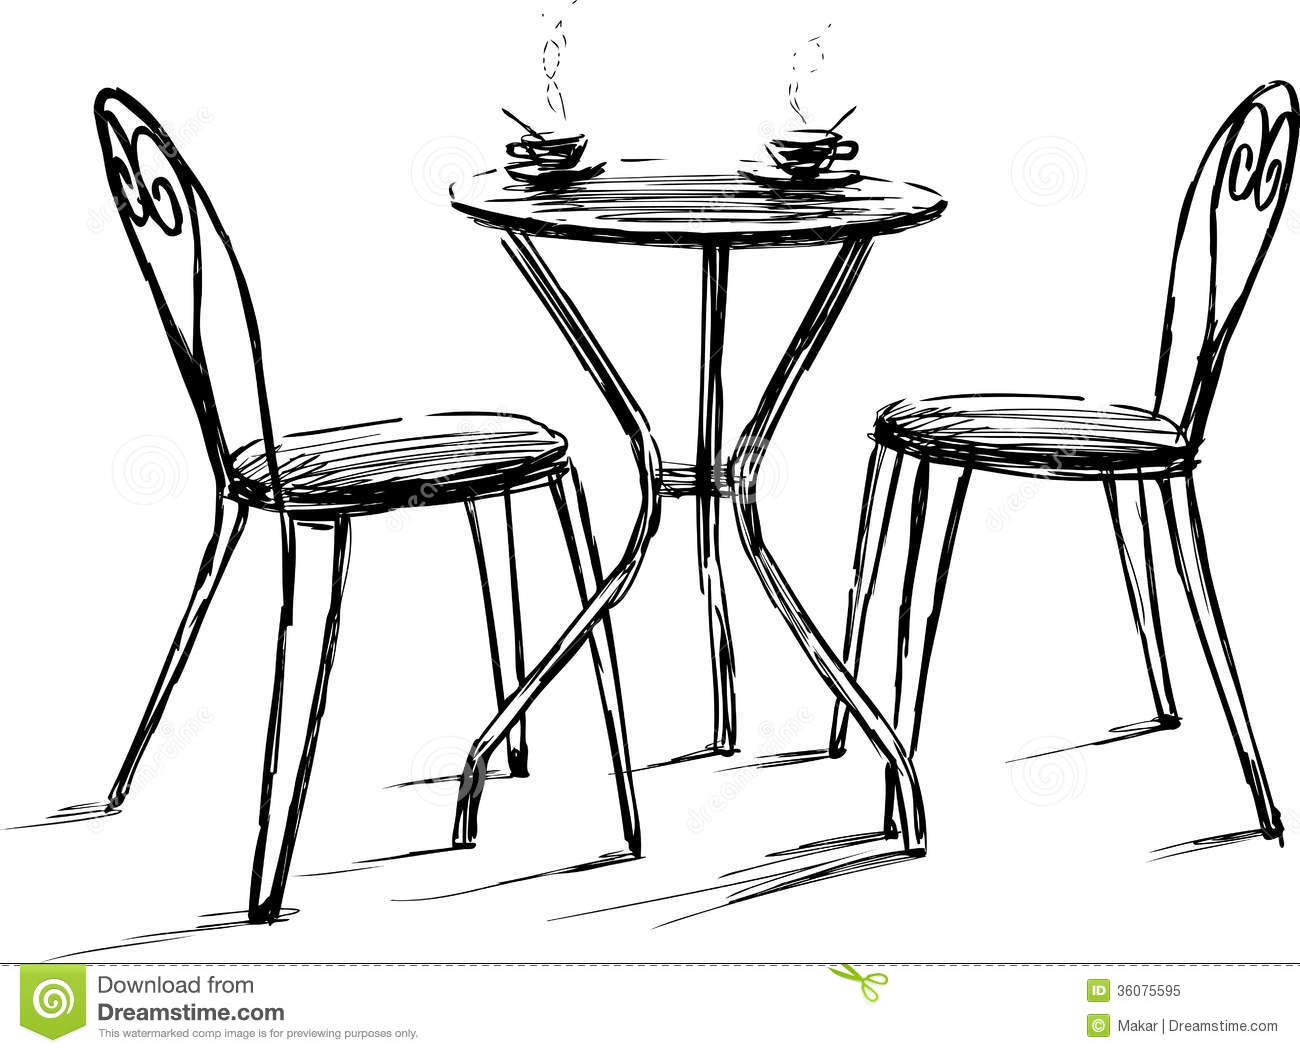 Clipart table cafe table. Suggest clip art brine